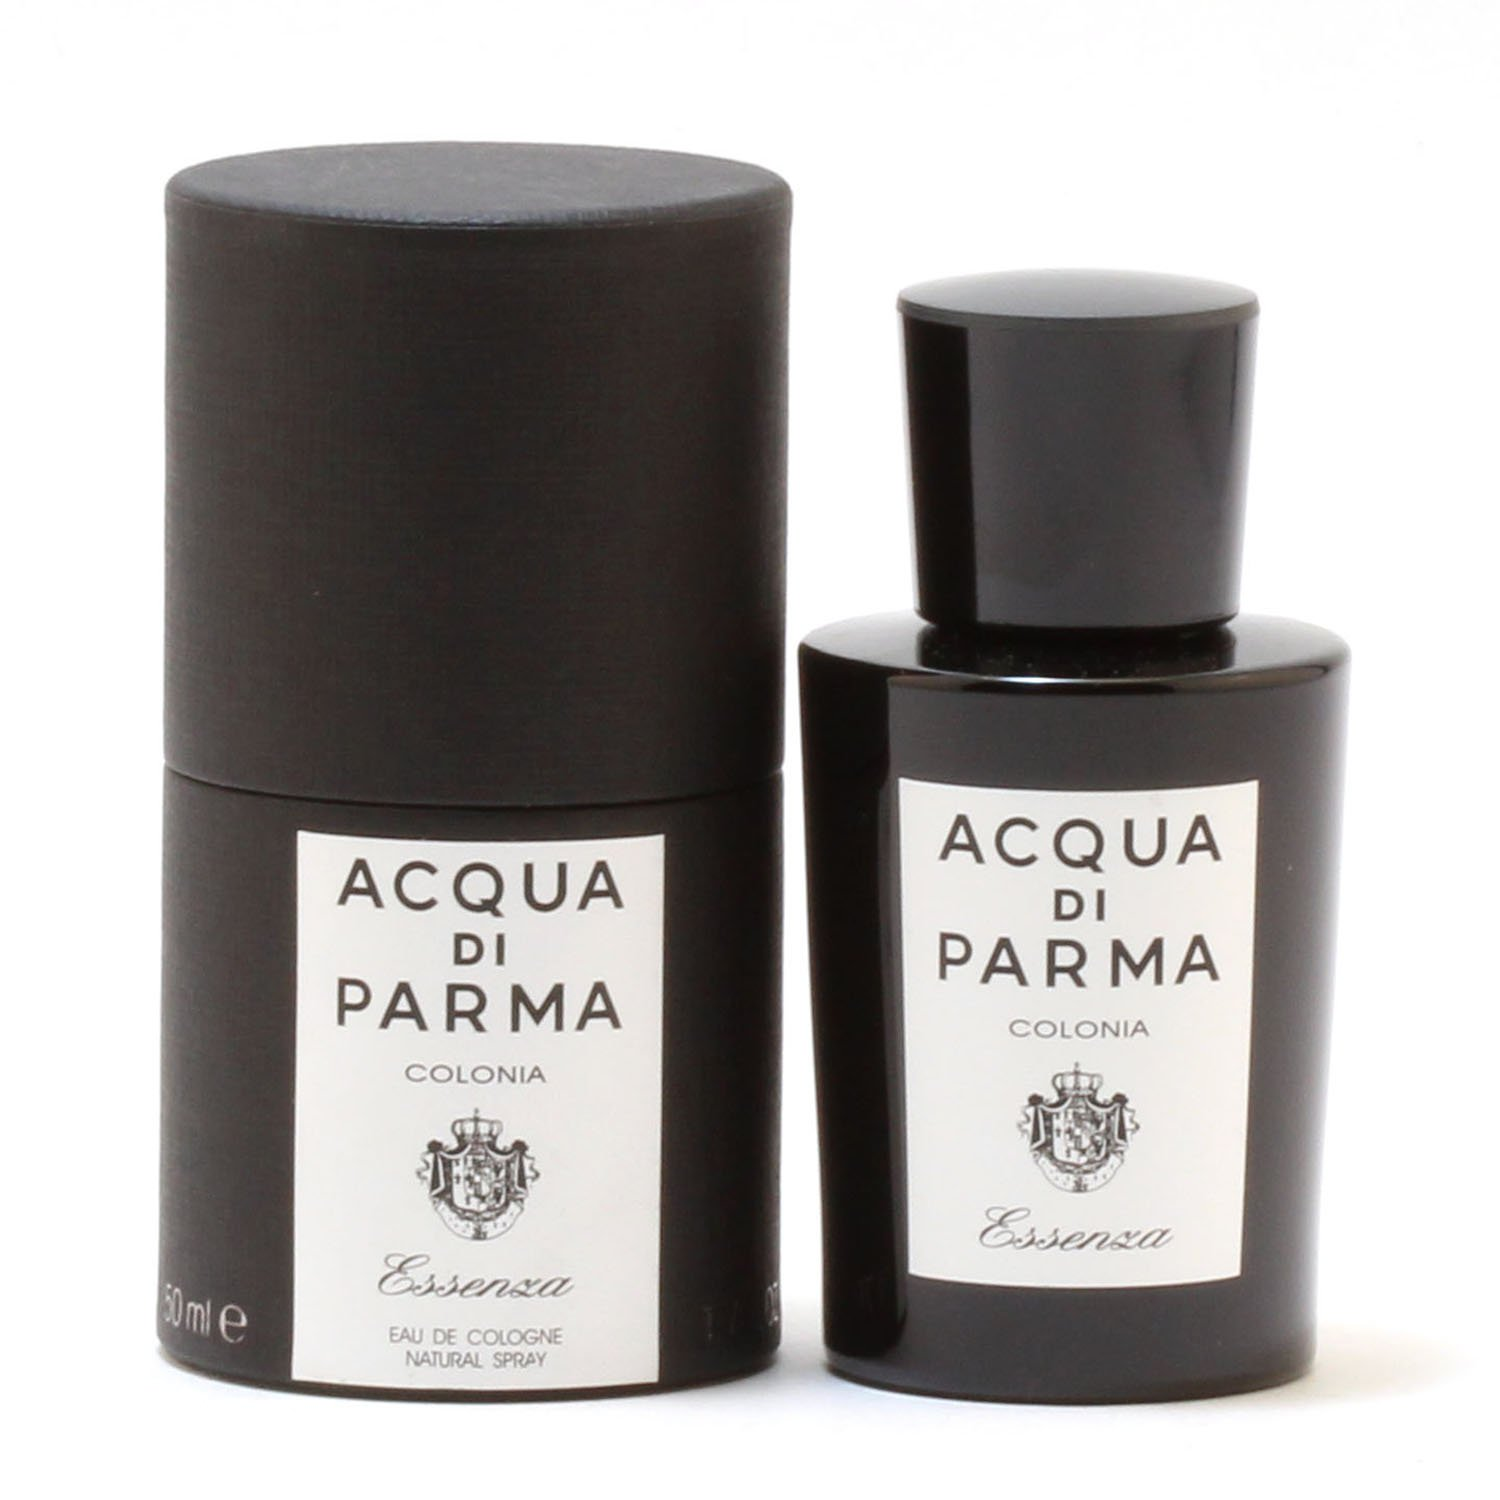 Amazon.com: Acqua Di Parma Colonia Essenzedc Spray: Health & Personal Care